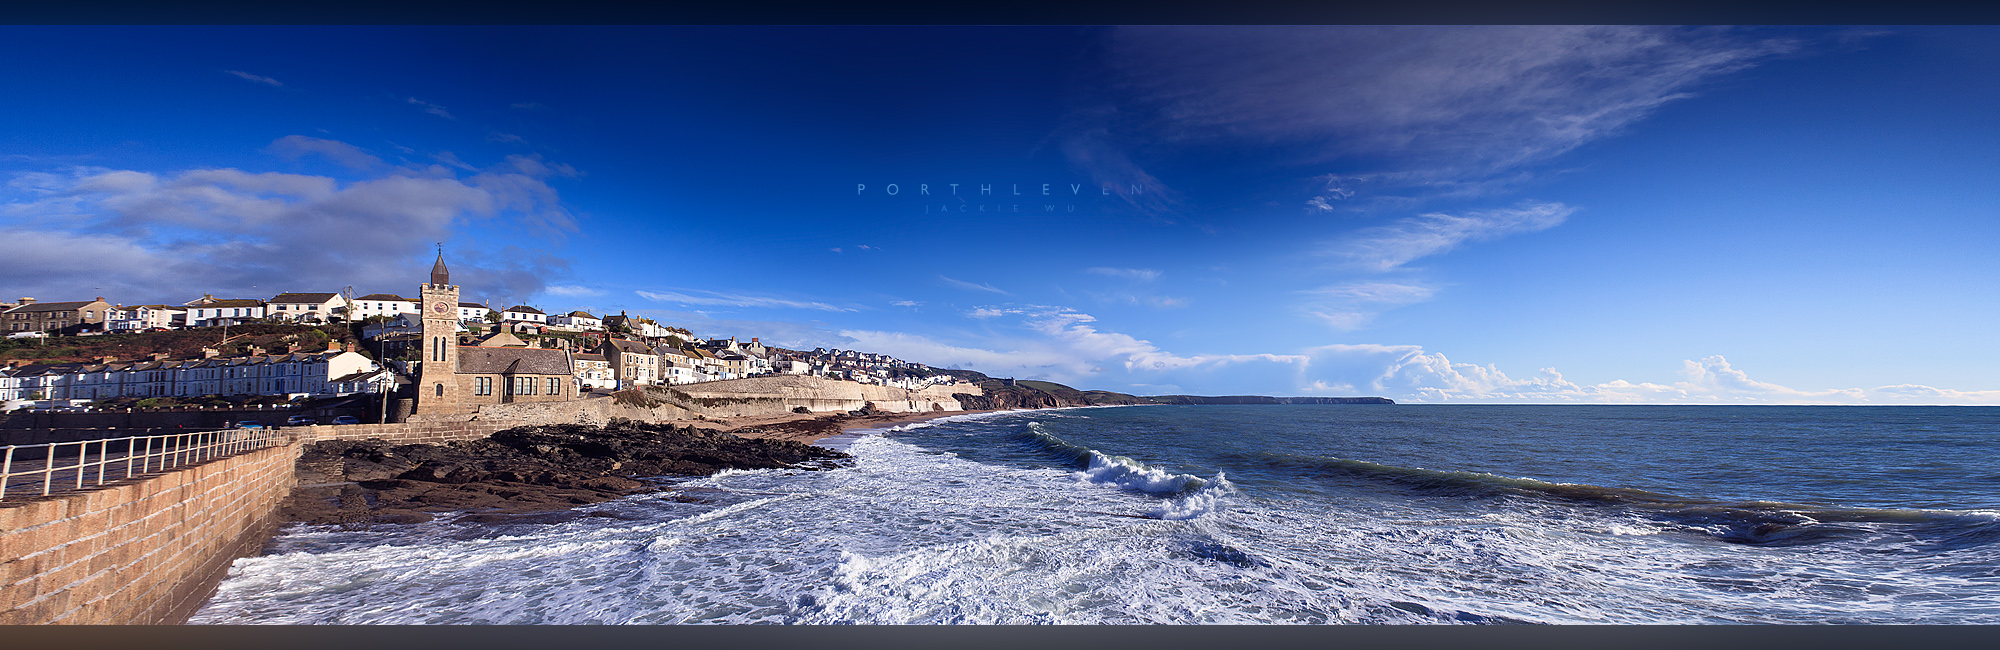 Porthleven by geckokid